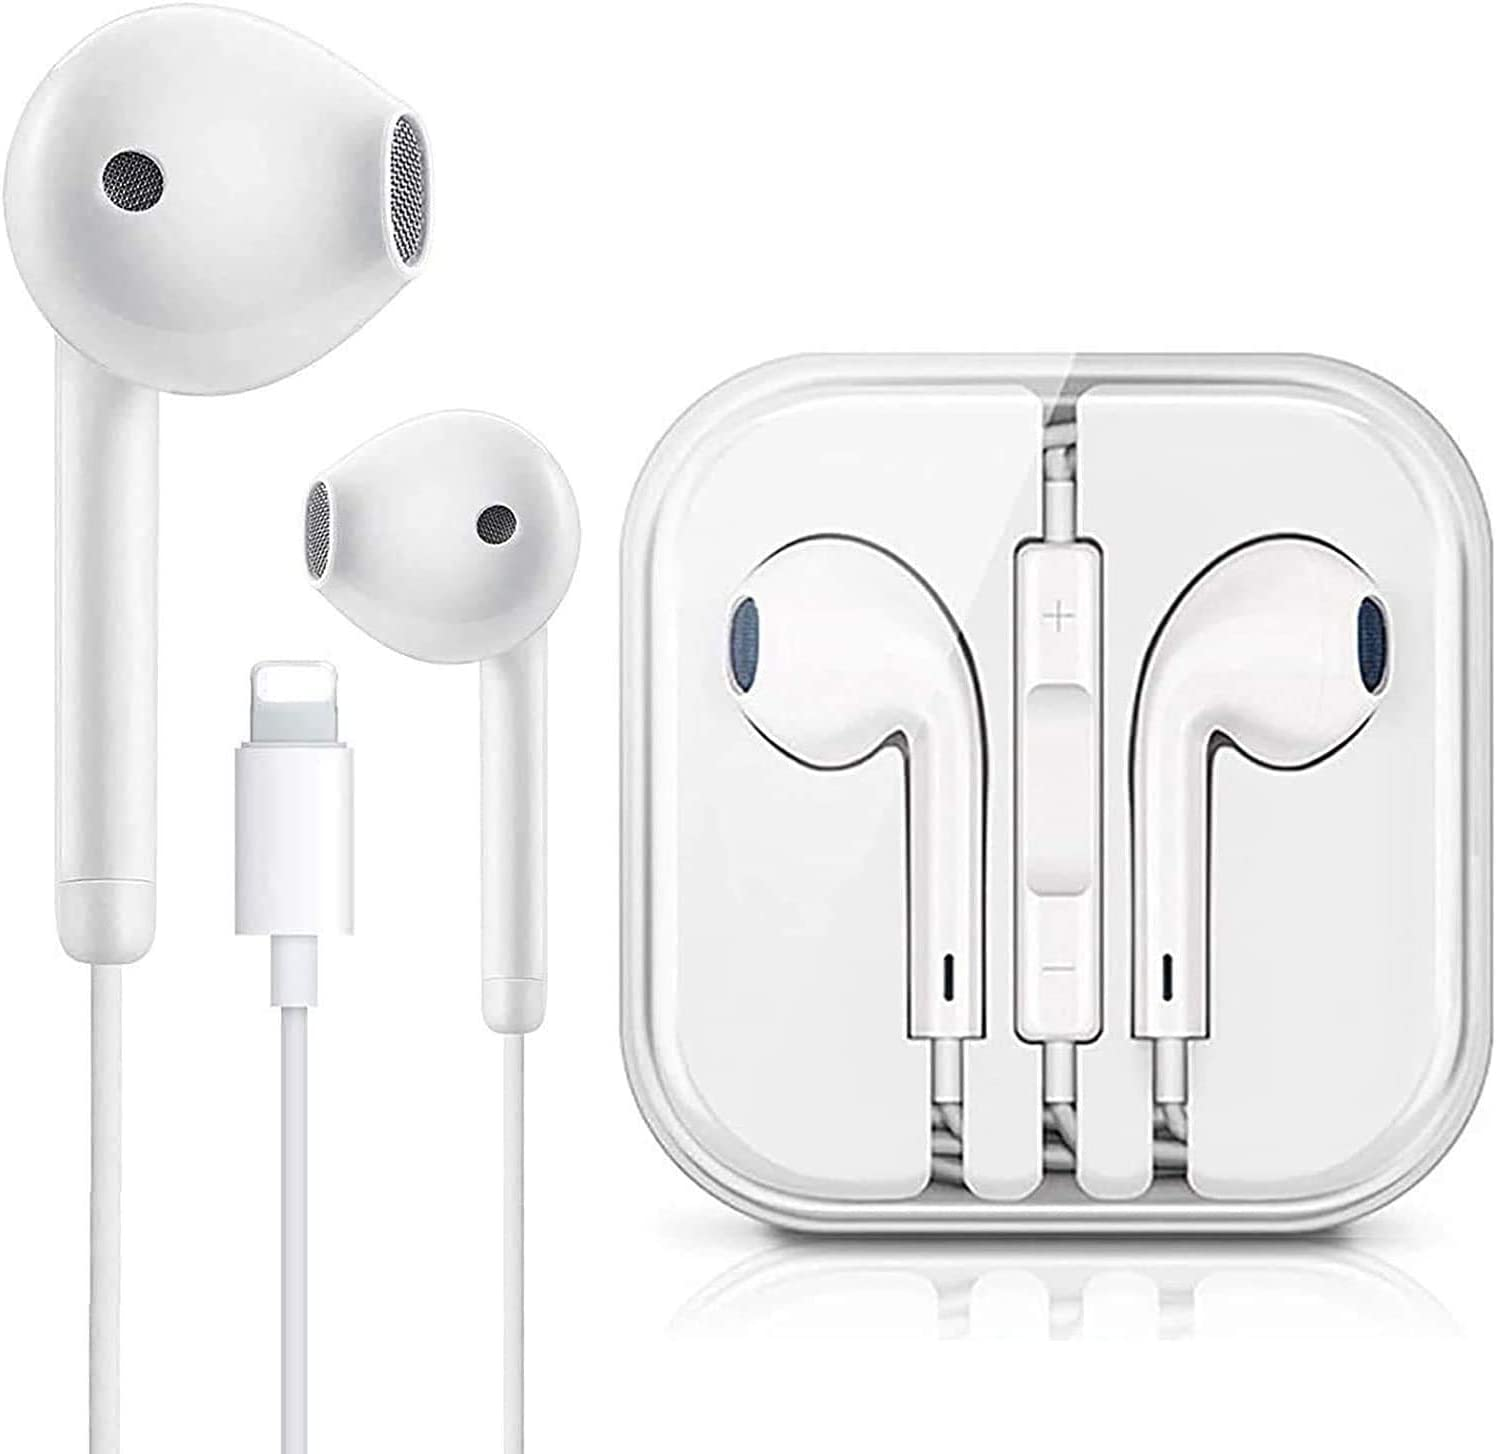 Lighting Connector Earbuds Earphone Wired Headphones Headset with Mic and Volume Control,Compatible with Apple iPhone 11 Pro Max/Xs Max/XR/X/7/8/8 Plus and Play Head Cleaners